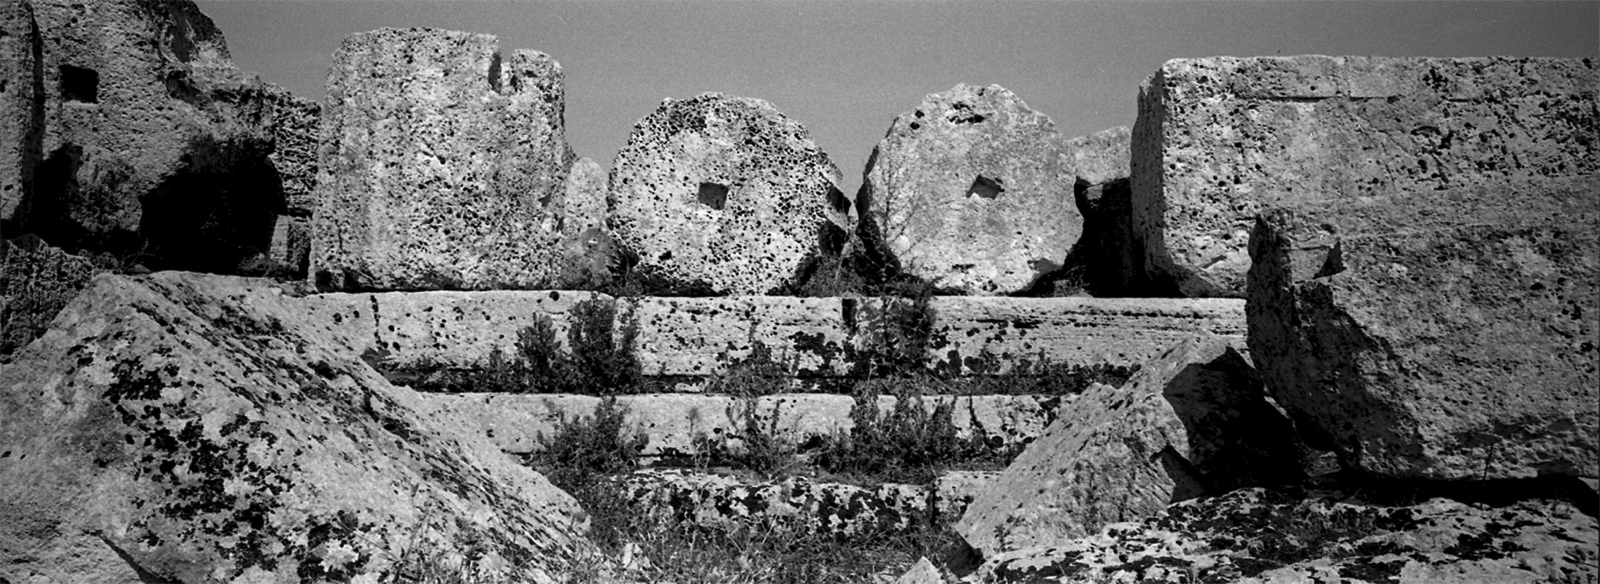 Art and Documentary Photography - Loading Archeologia_in_Sicilia___Fabio_Sgroi_061_.jpg